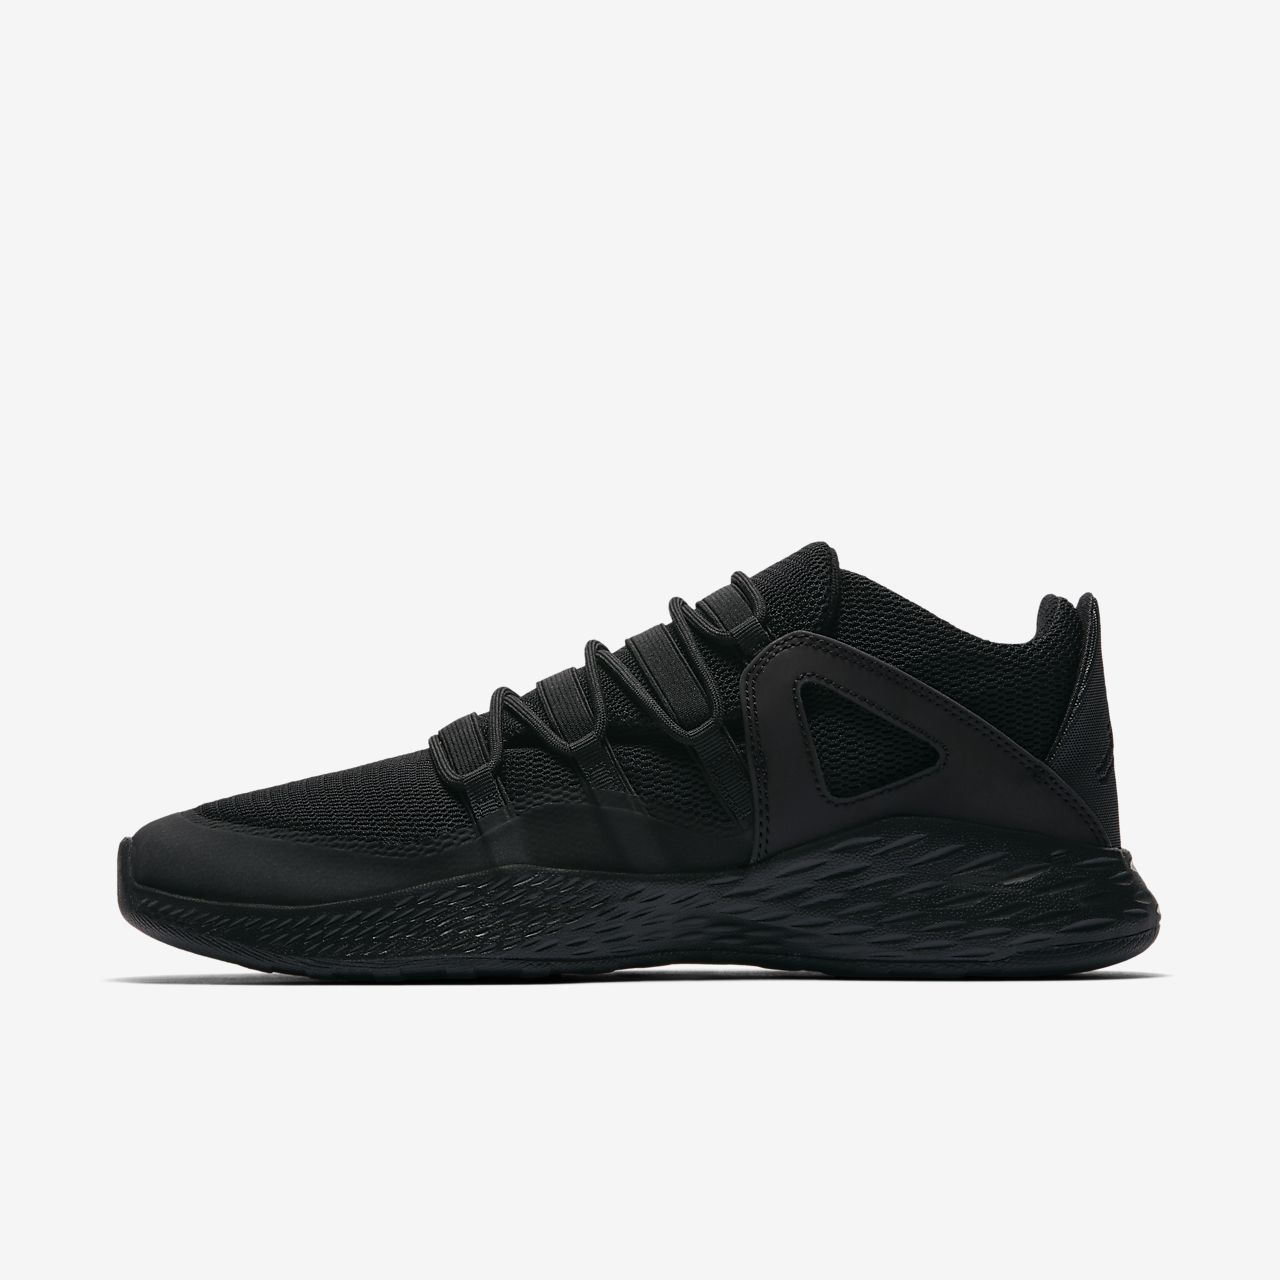 cheap jordans shoes for men 8.5 nz